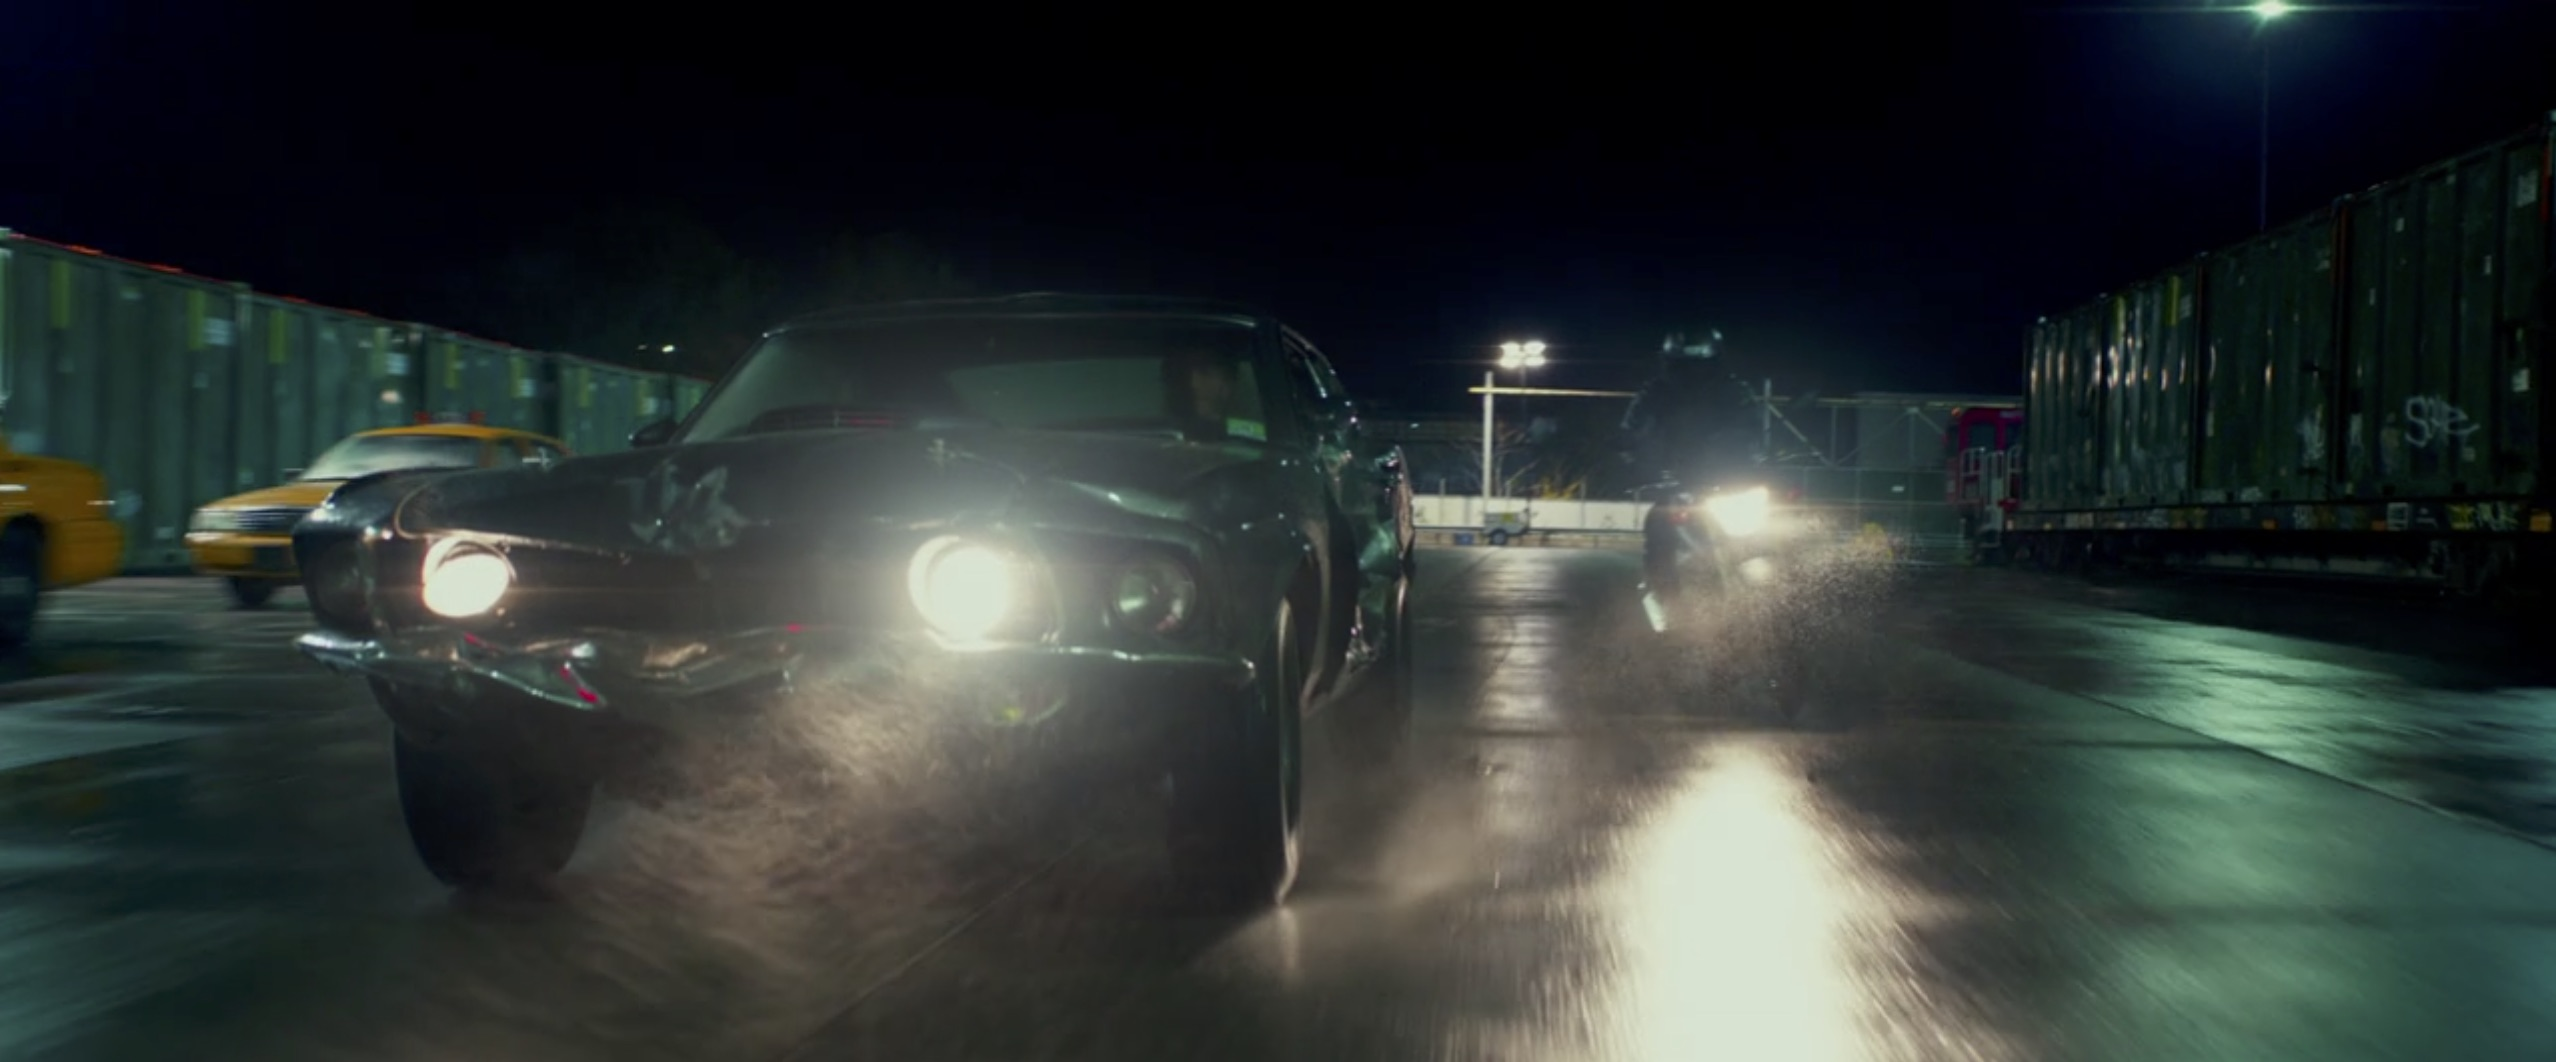 John Wick: Chapter 2 car chase